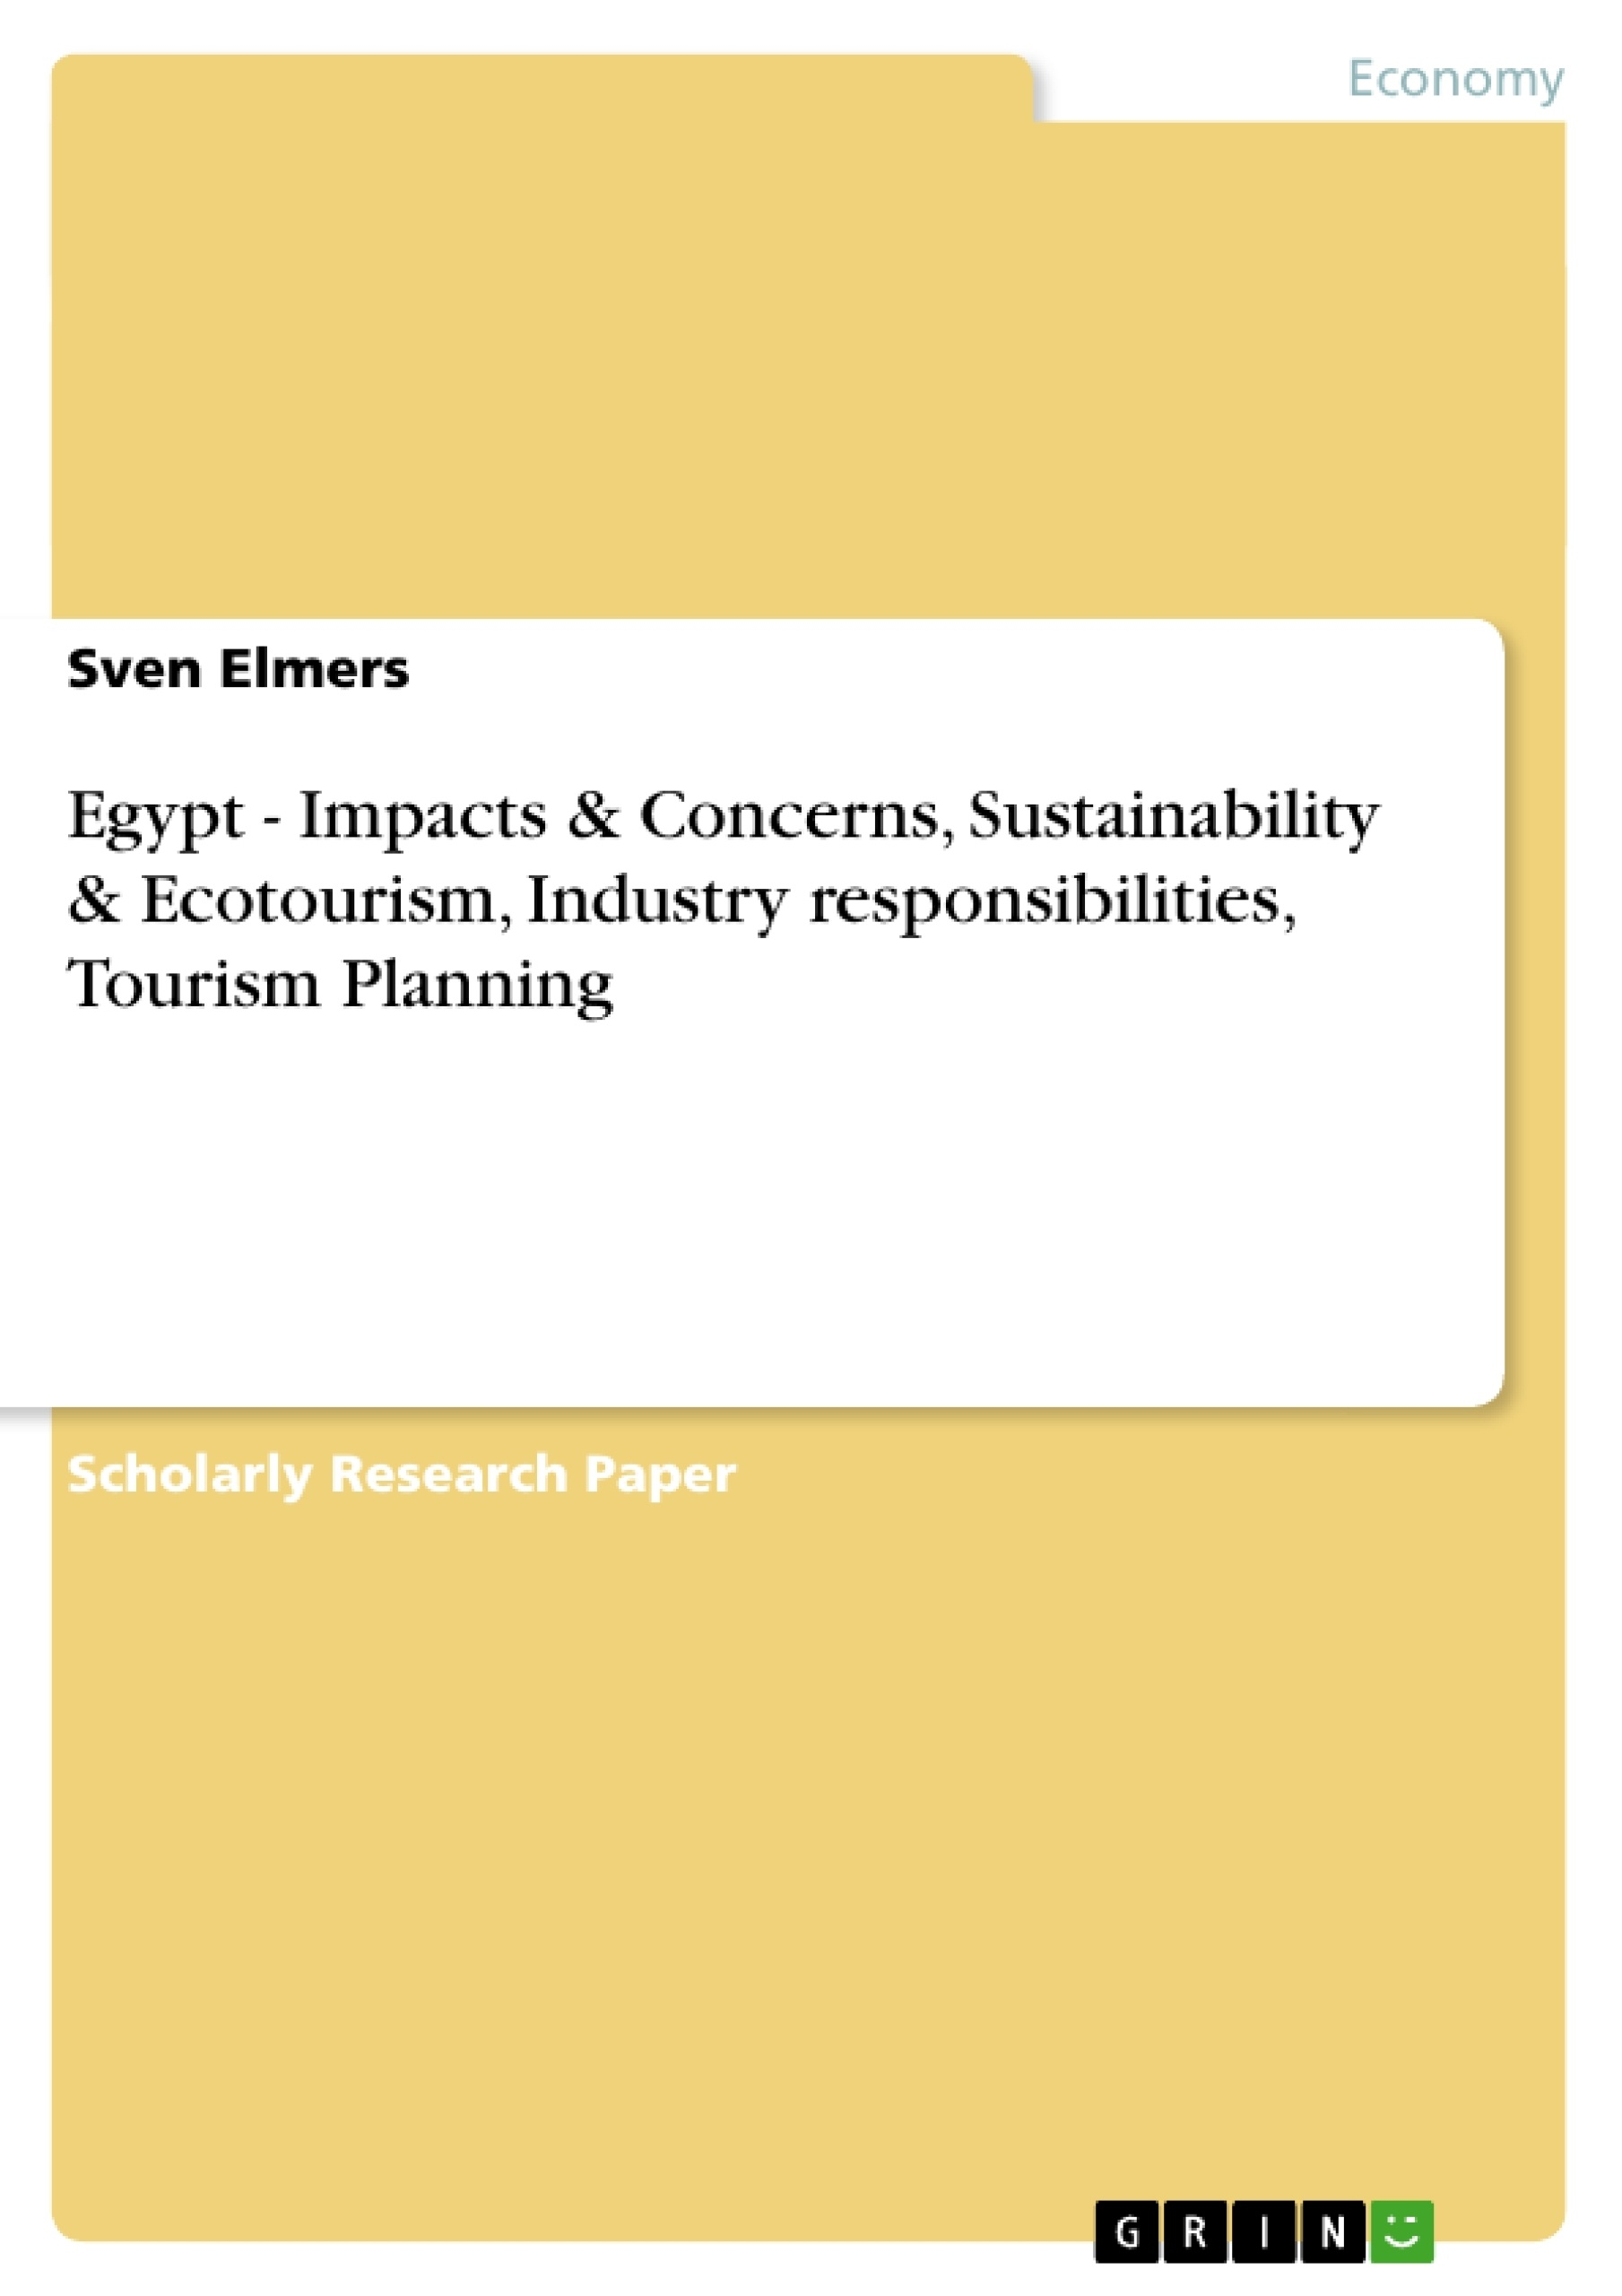 Title: Egypt - Impacts & Concerns, Sustainability & Ecotourism, Industry responsibilities, Tourism Planning